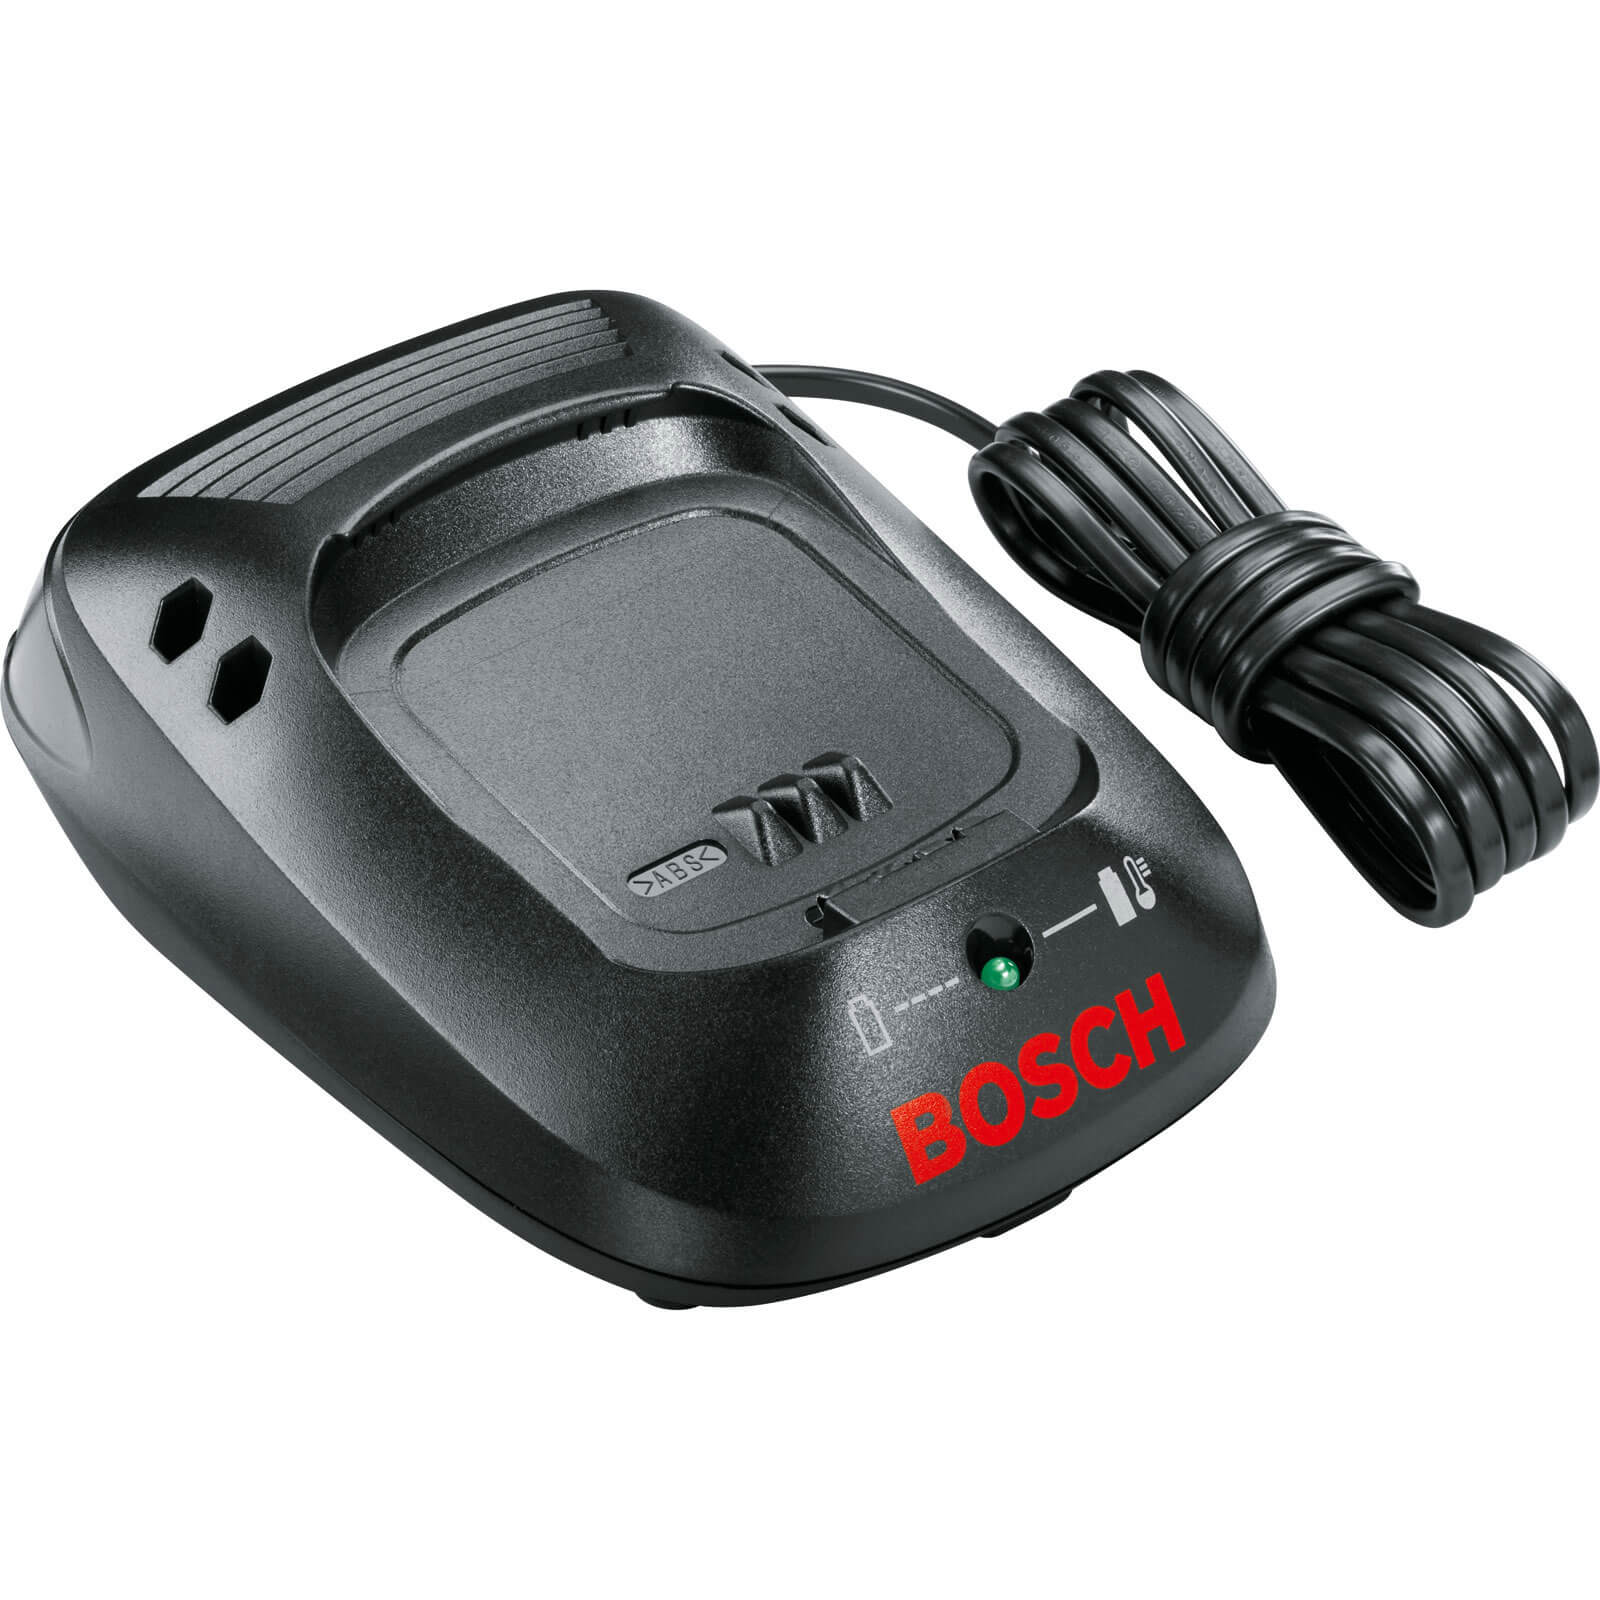 POWER4ALL 60min Battery Charger for